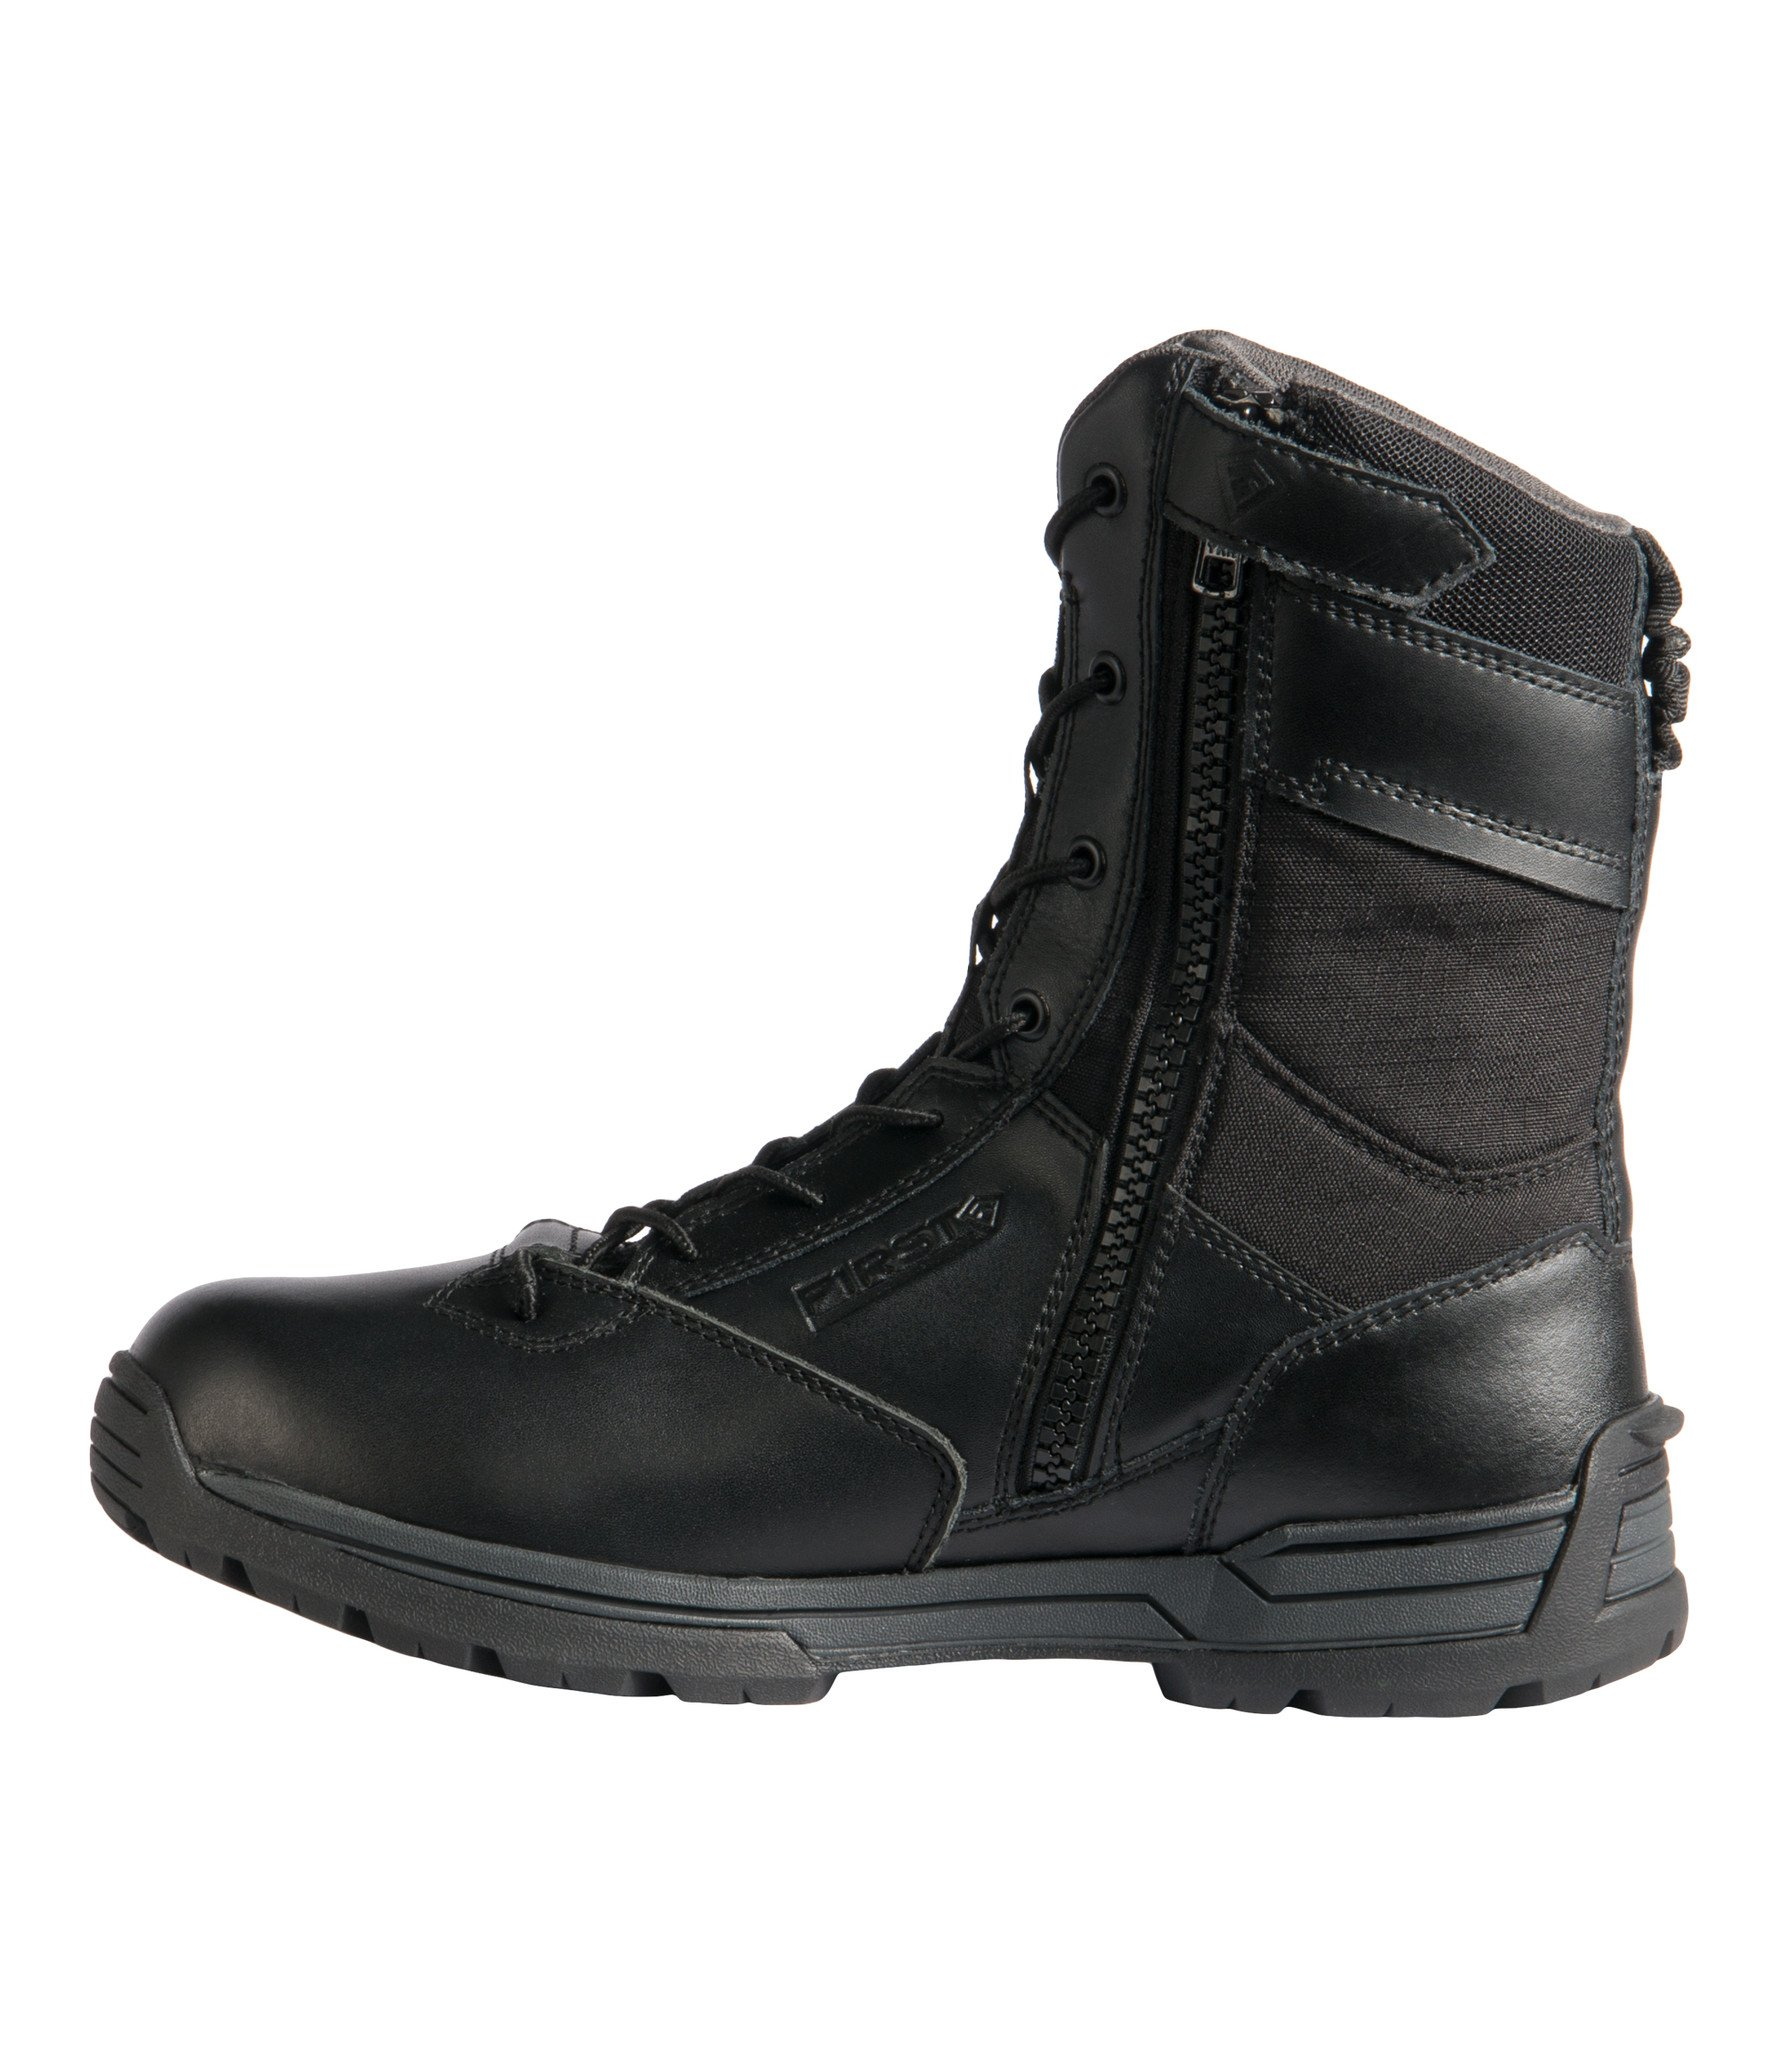 "Men's 8"" Waterproof Side Zip Duty Boot (Black)"